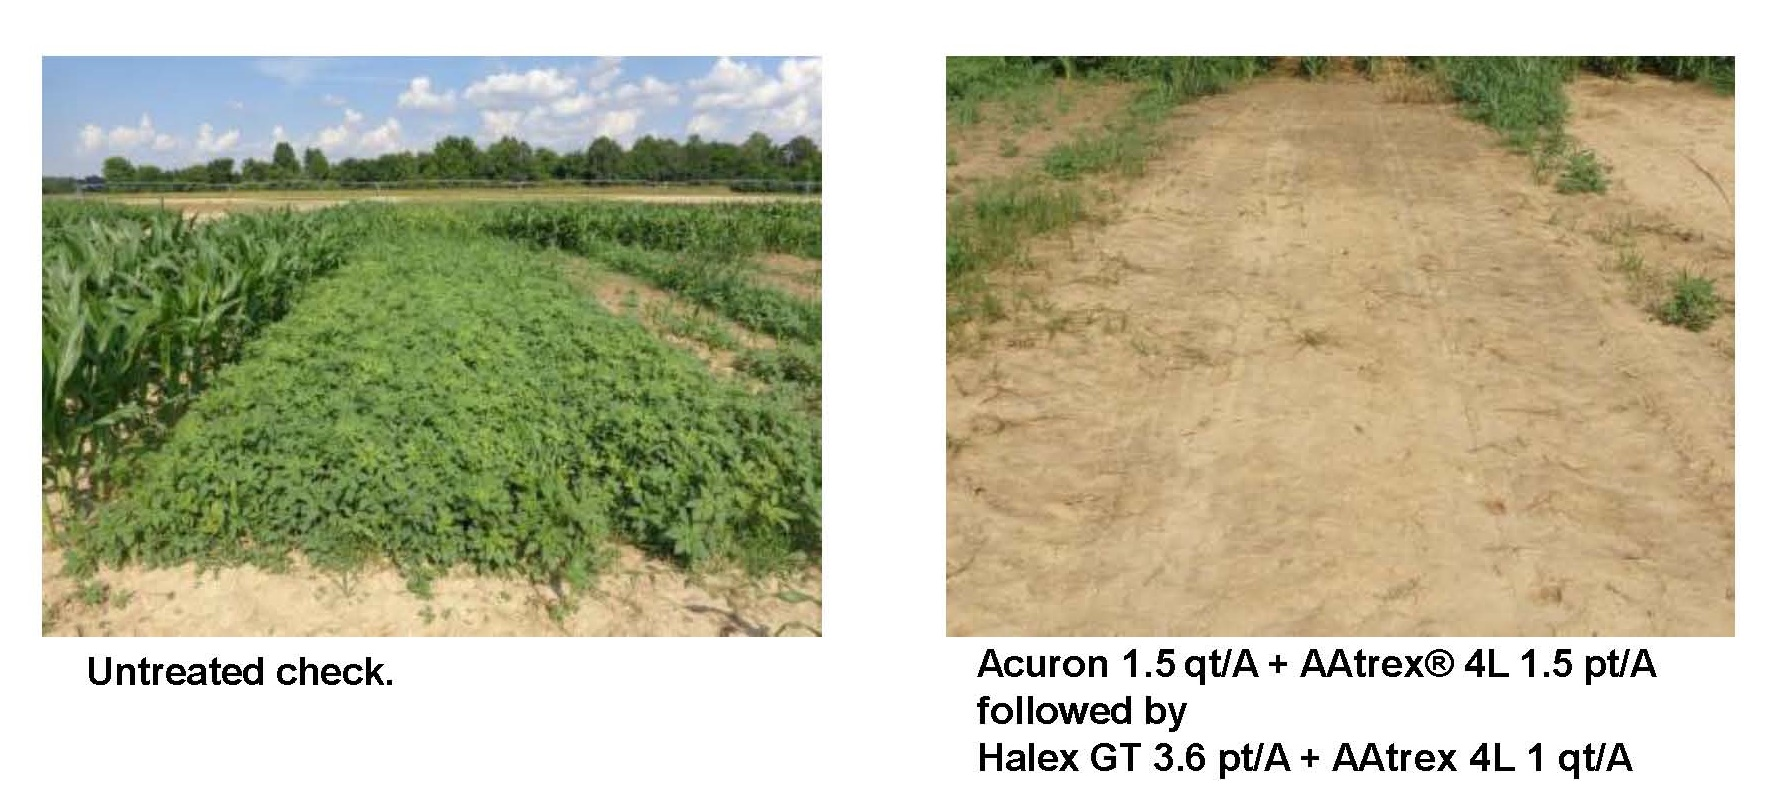 An agronomic chart showing fields with different weed control options and the possible yield loss from weeds.